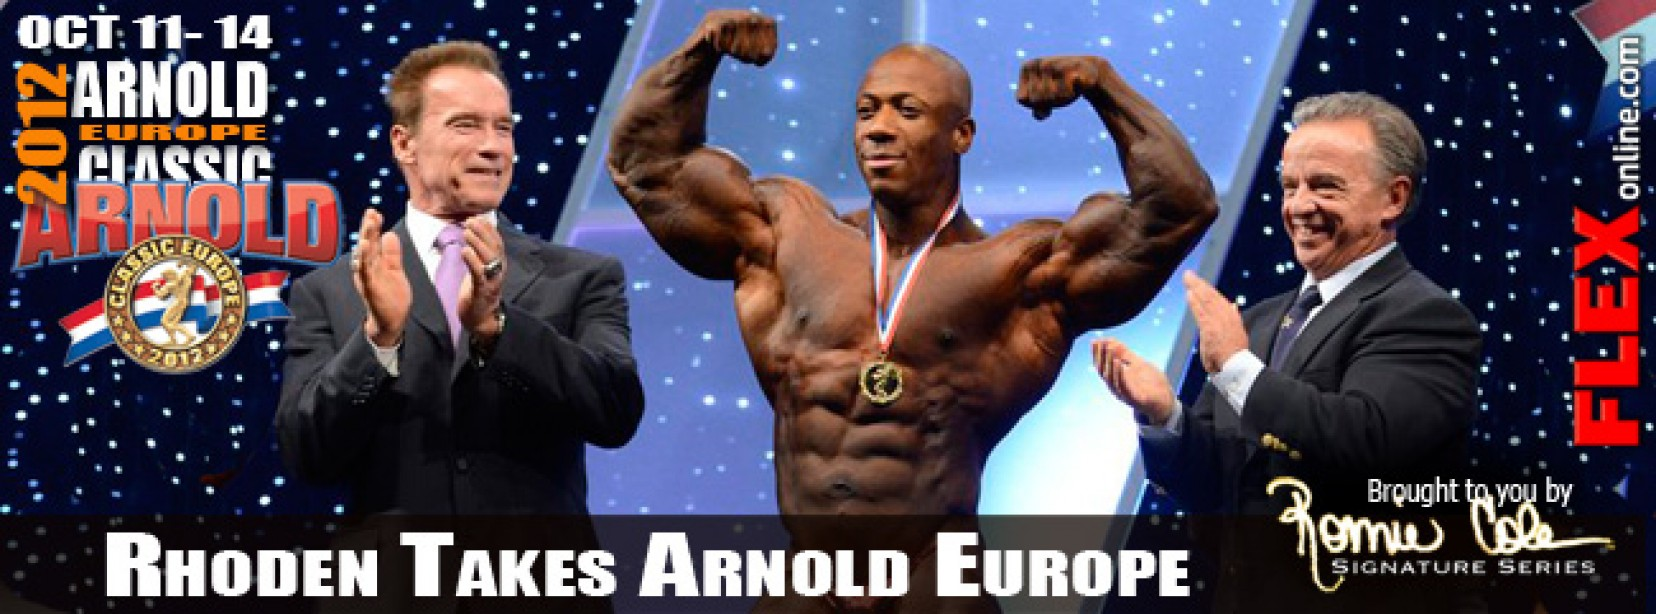 Rhoden Wins Madrid - Full Report and Results